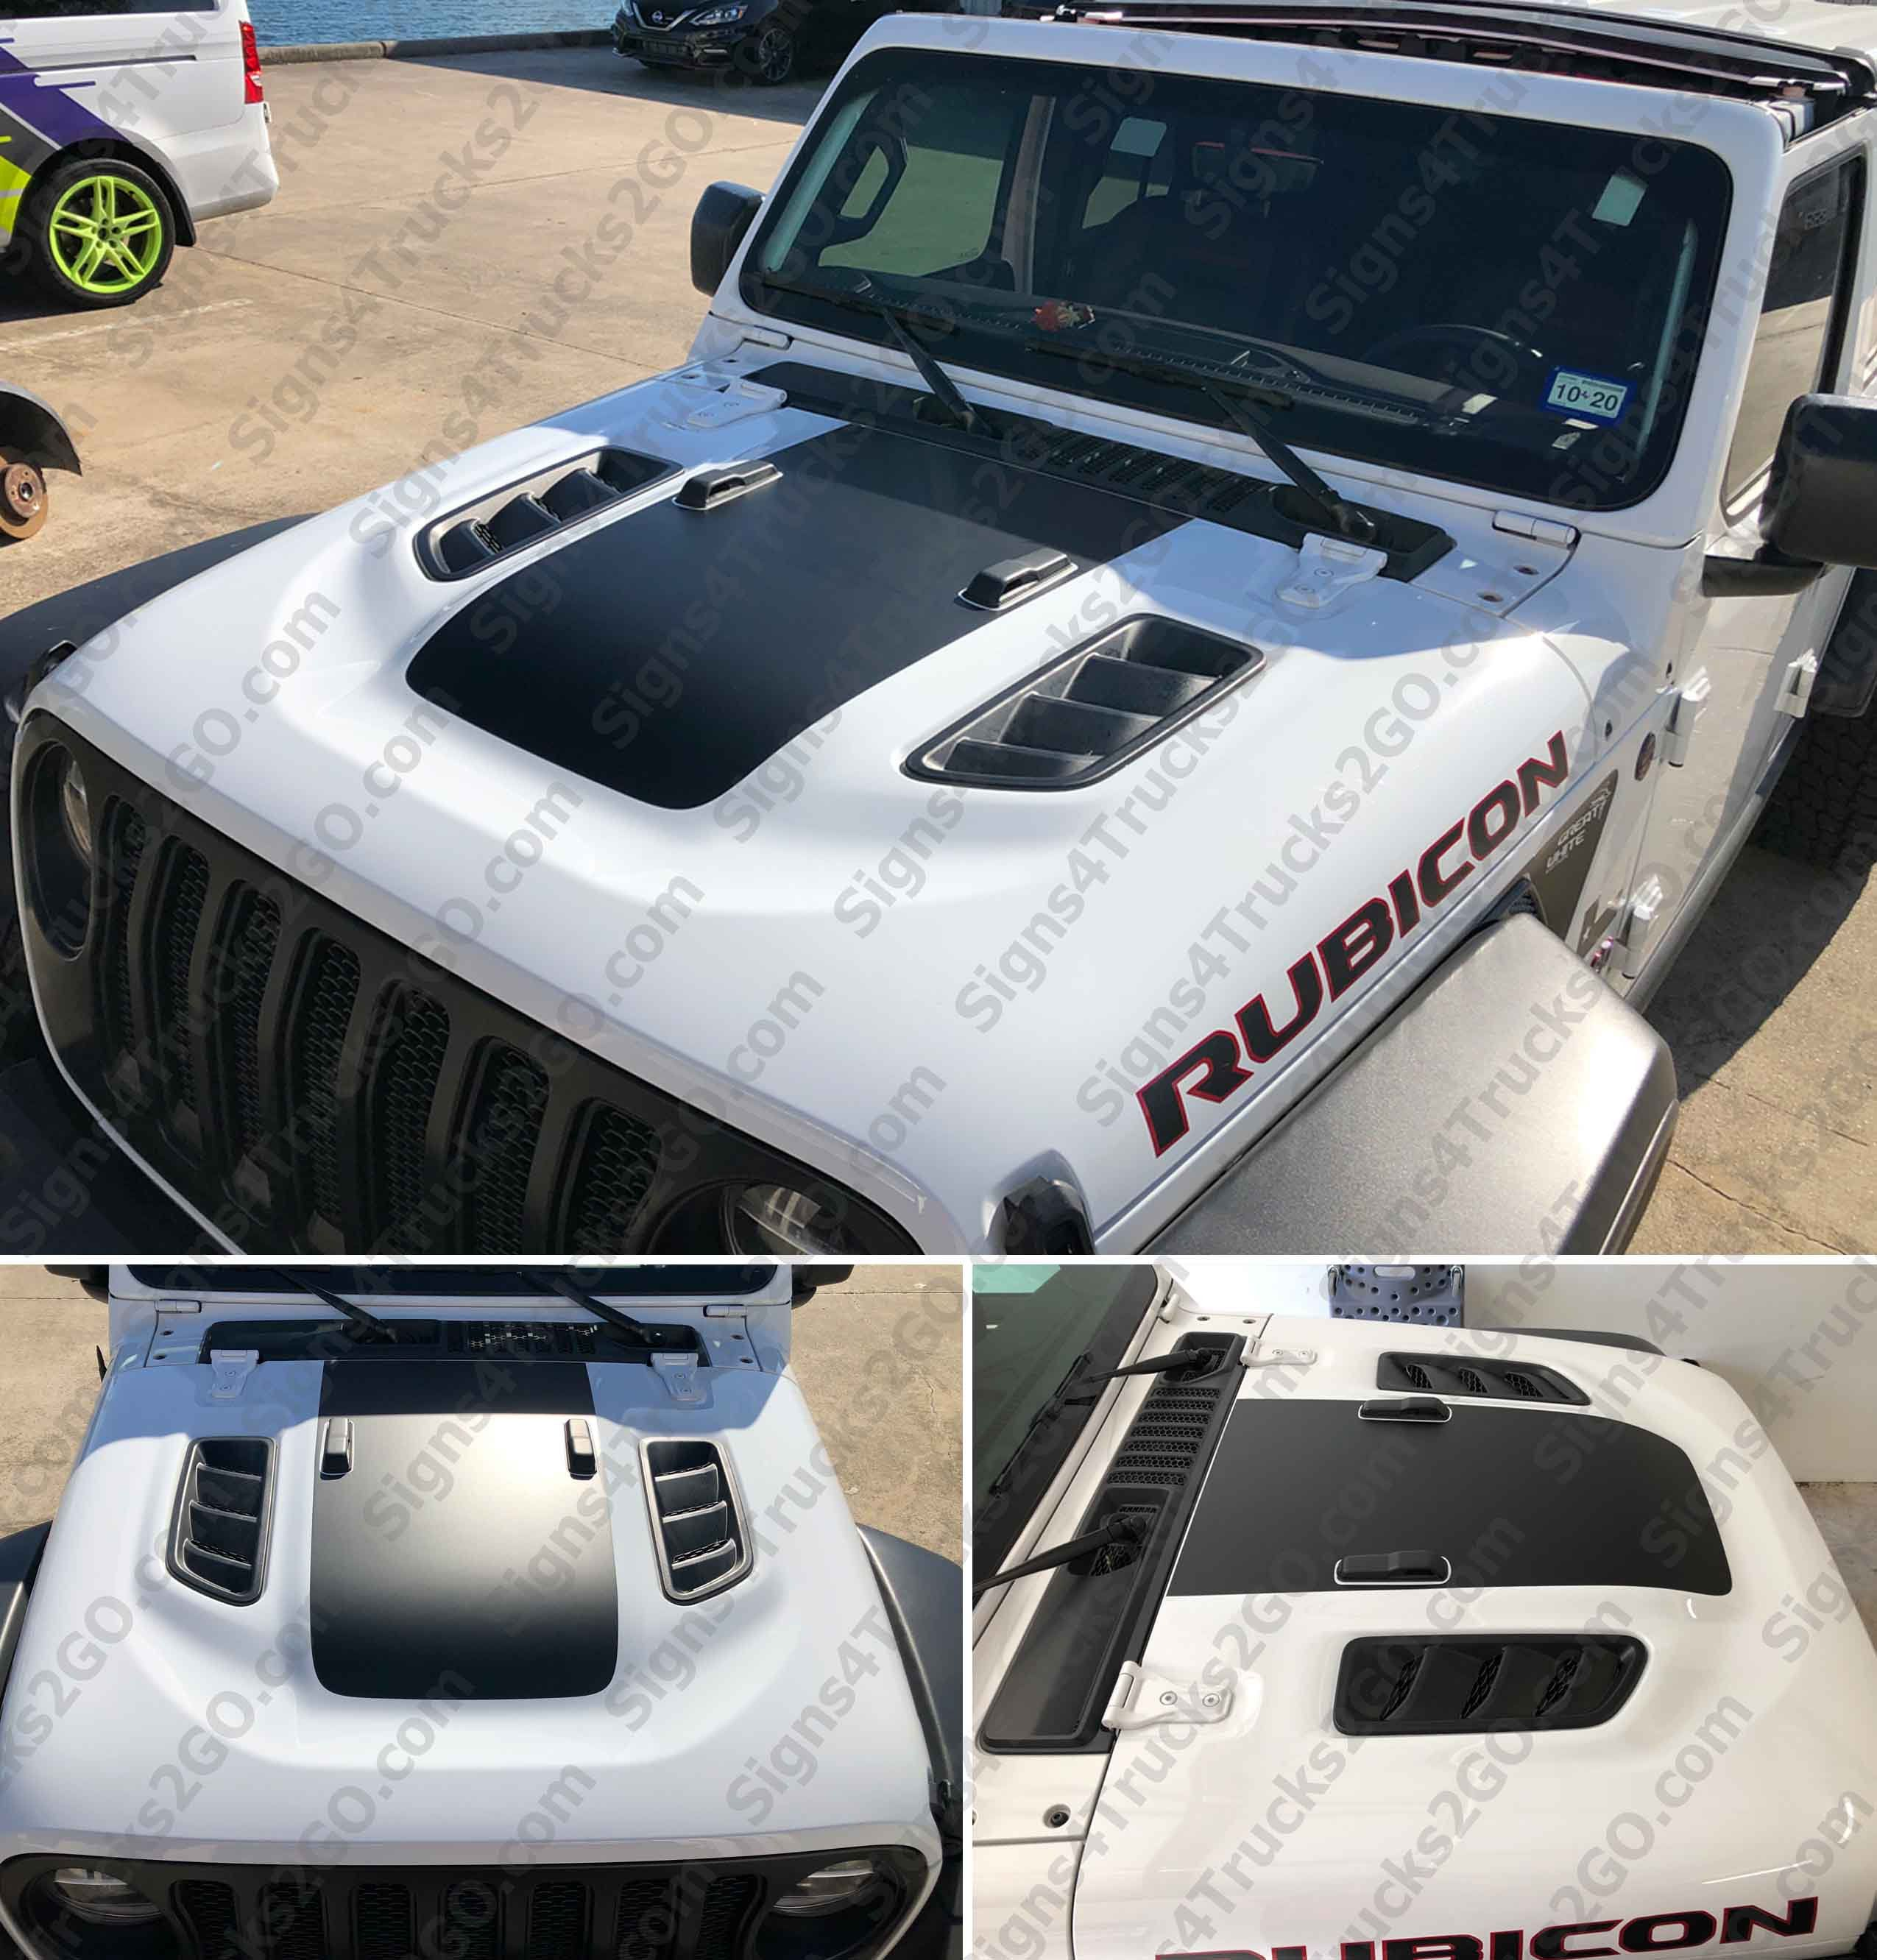 0765 2018 2019 2020 Rubicon Jl Jlu Hood Blackout Decal Graphic